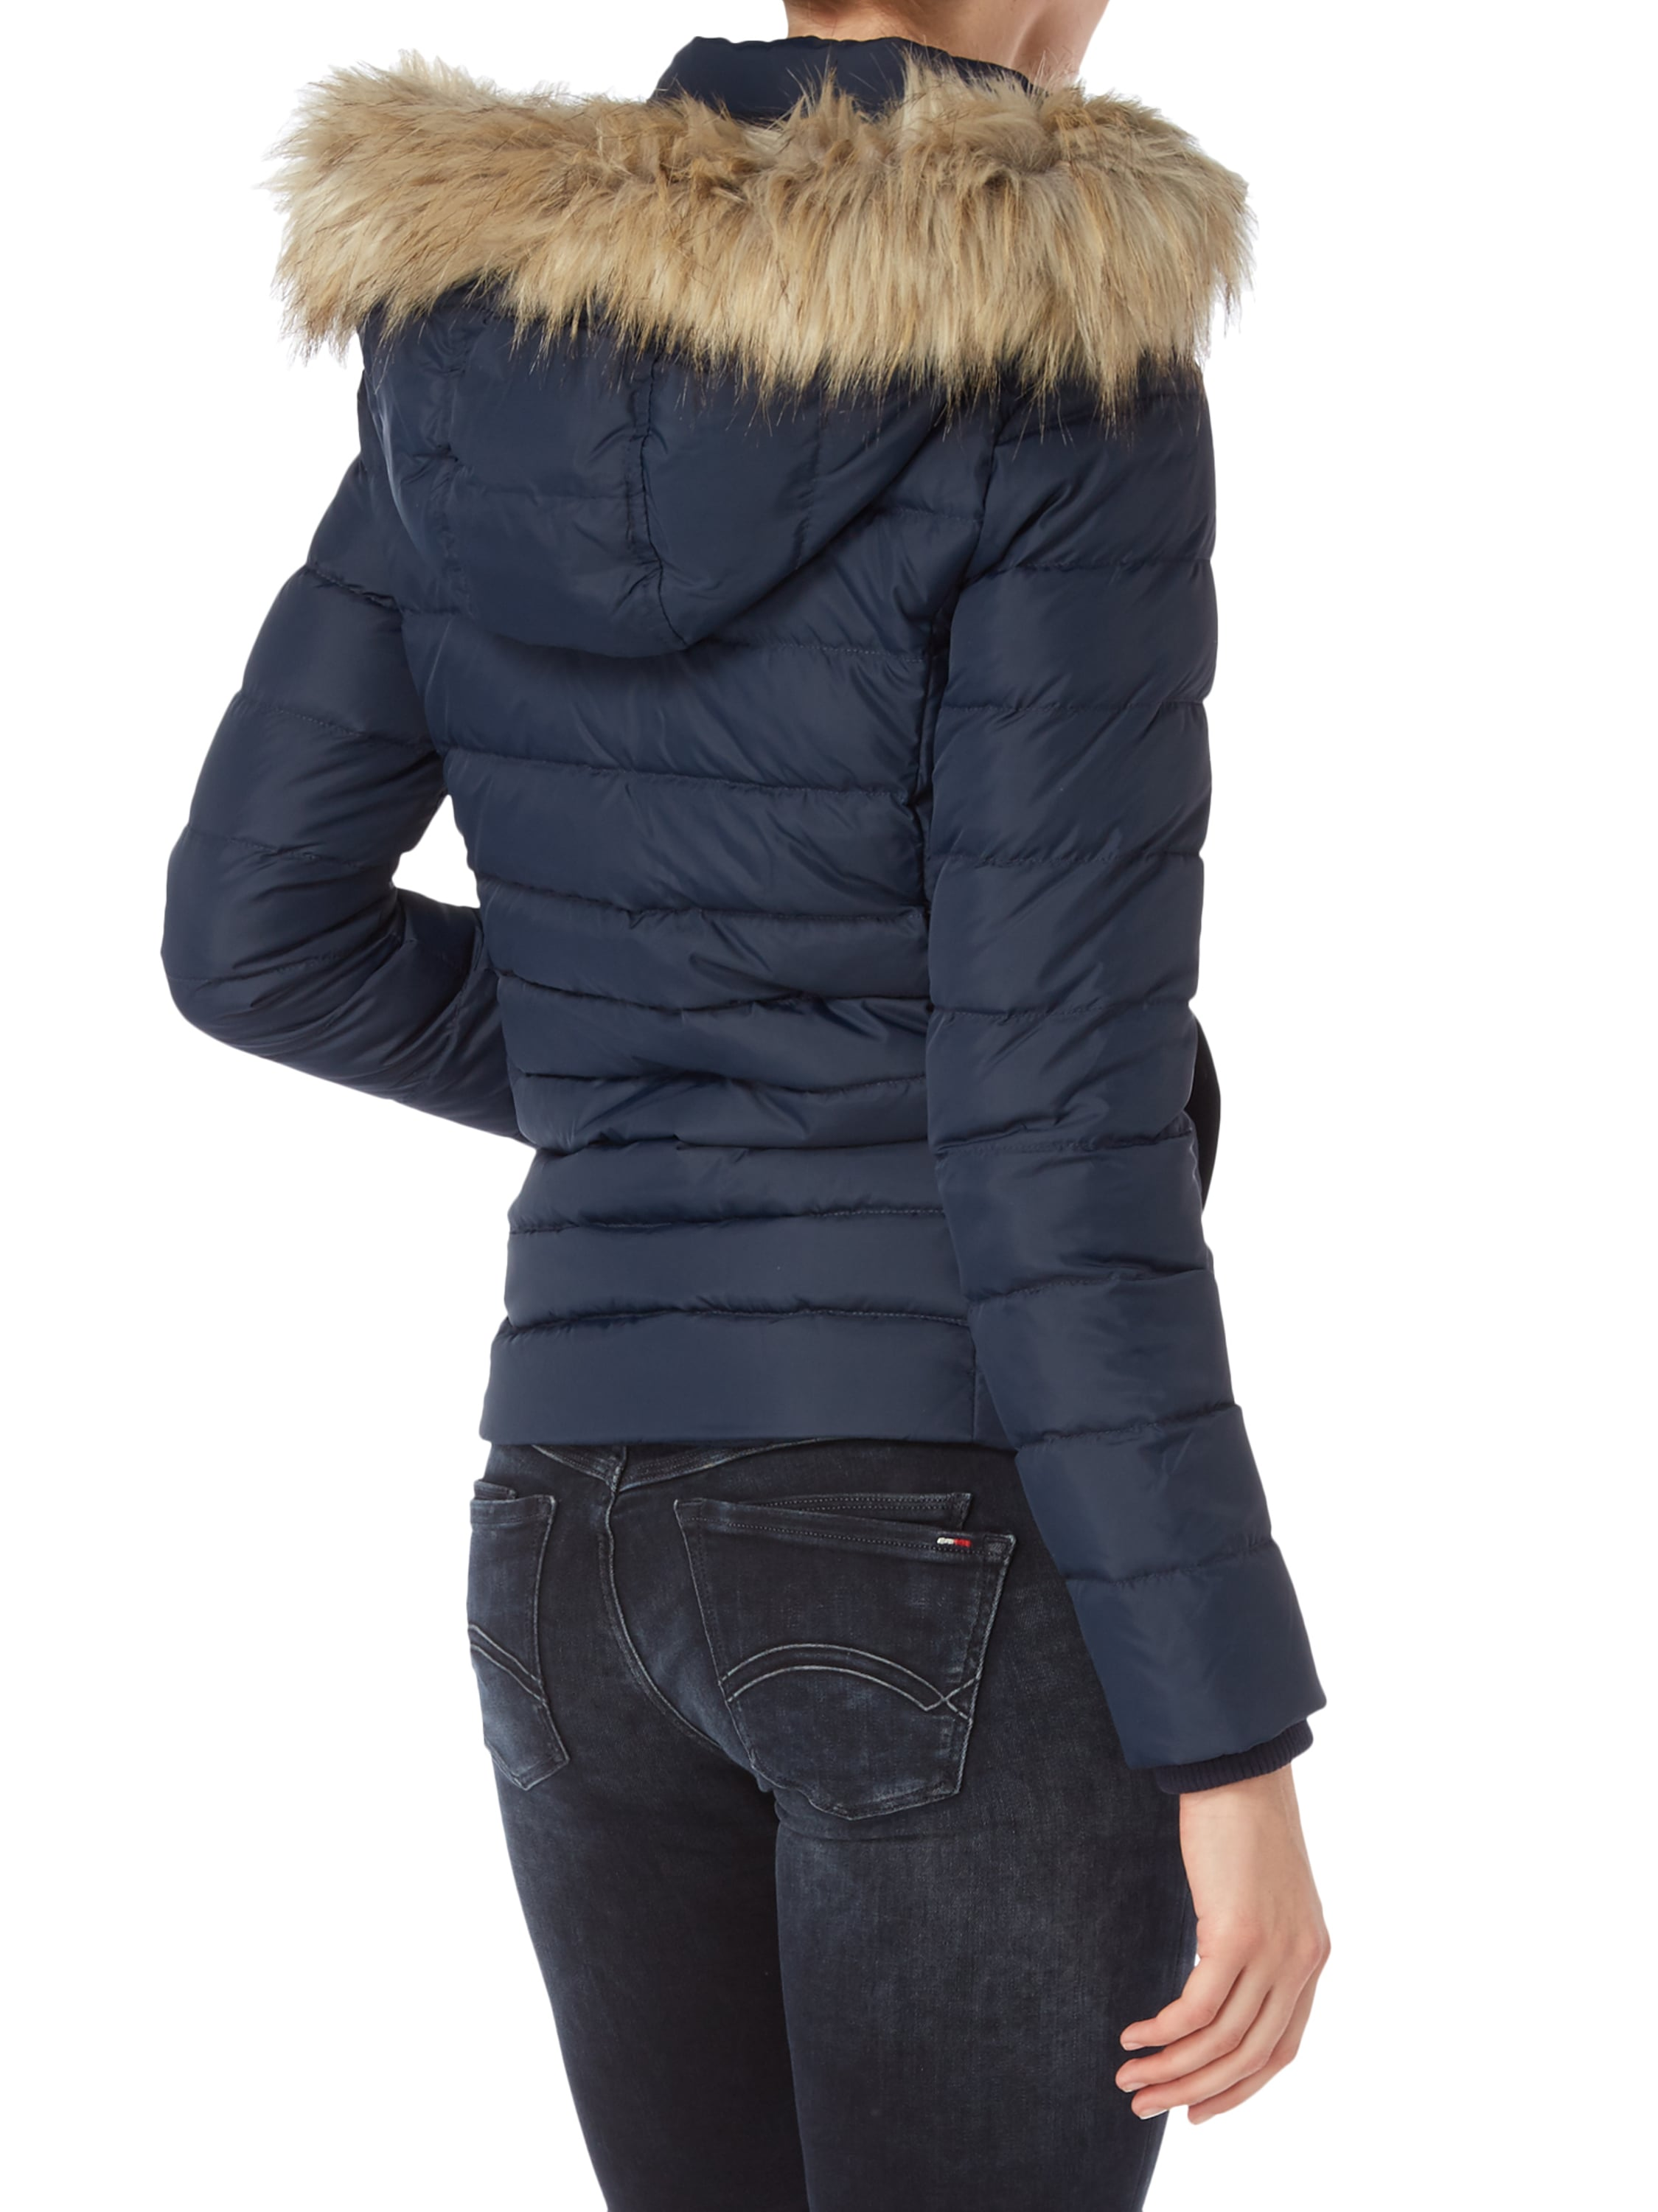 hilfiger denim steppjacke mit daunen federn f llung in blau t rkis online kaufen 9499637 p. Black Bedroom Furniture Sets. Home Design Ideas